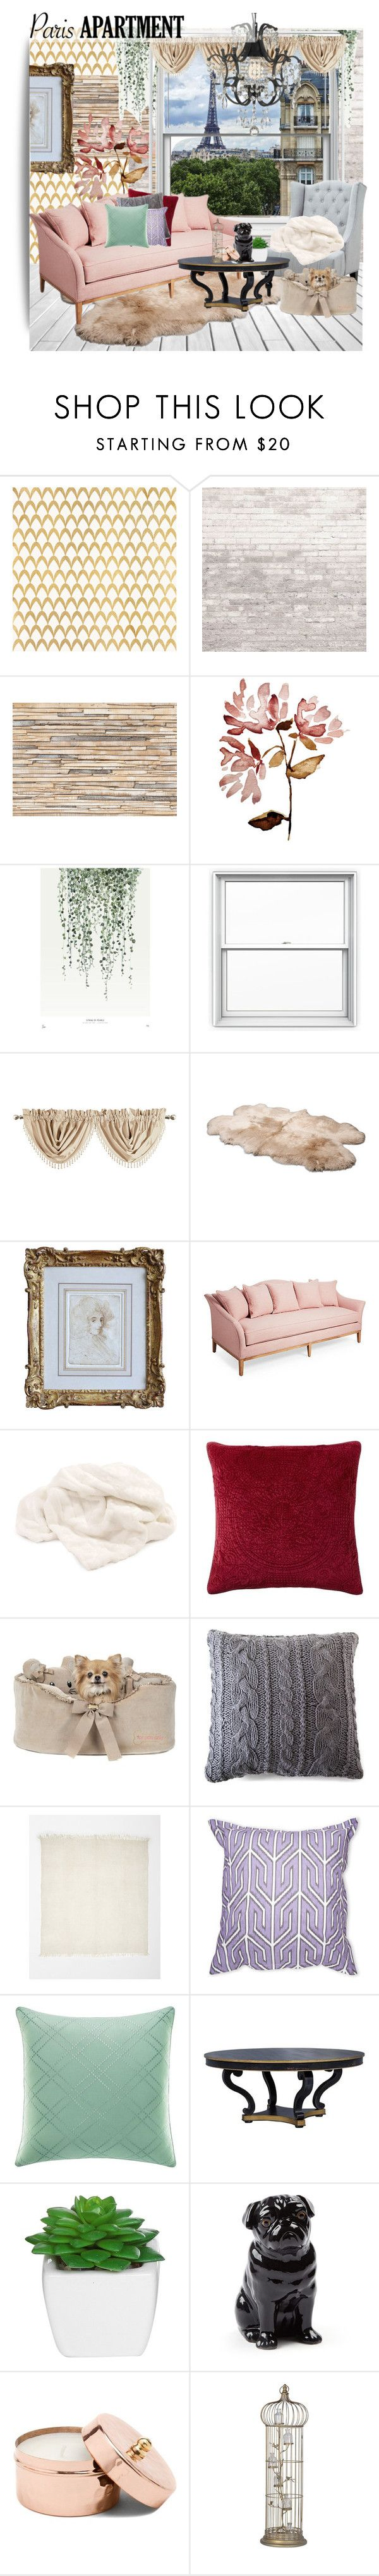 """""""Le coucher du soleil"""" by luxurythought ❤ liked on Polyvore featuring interior, interiors, interior design, home, home decor, interior decorating, Barclay Butera, WALL, Brewster Home Fashions and Lonely Planet"""